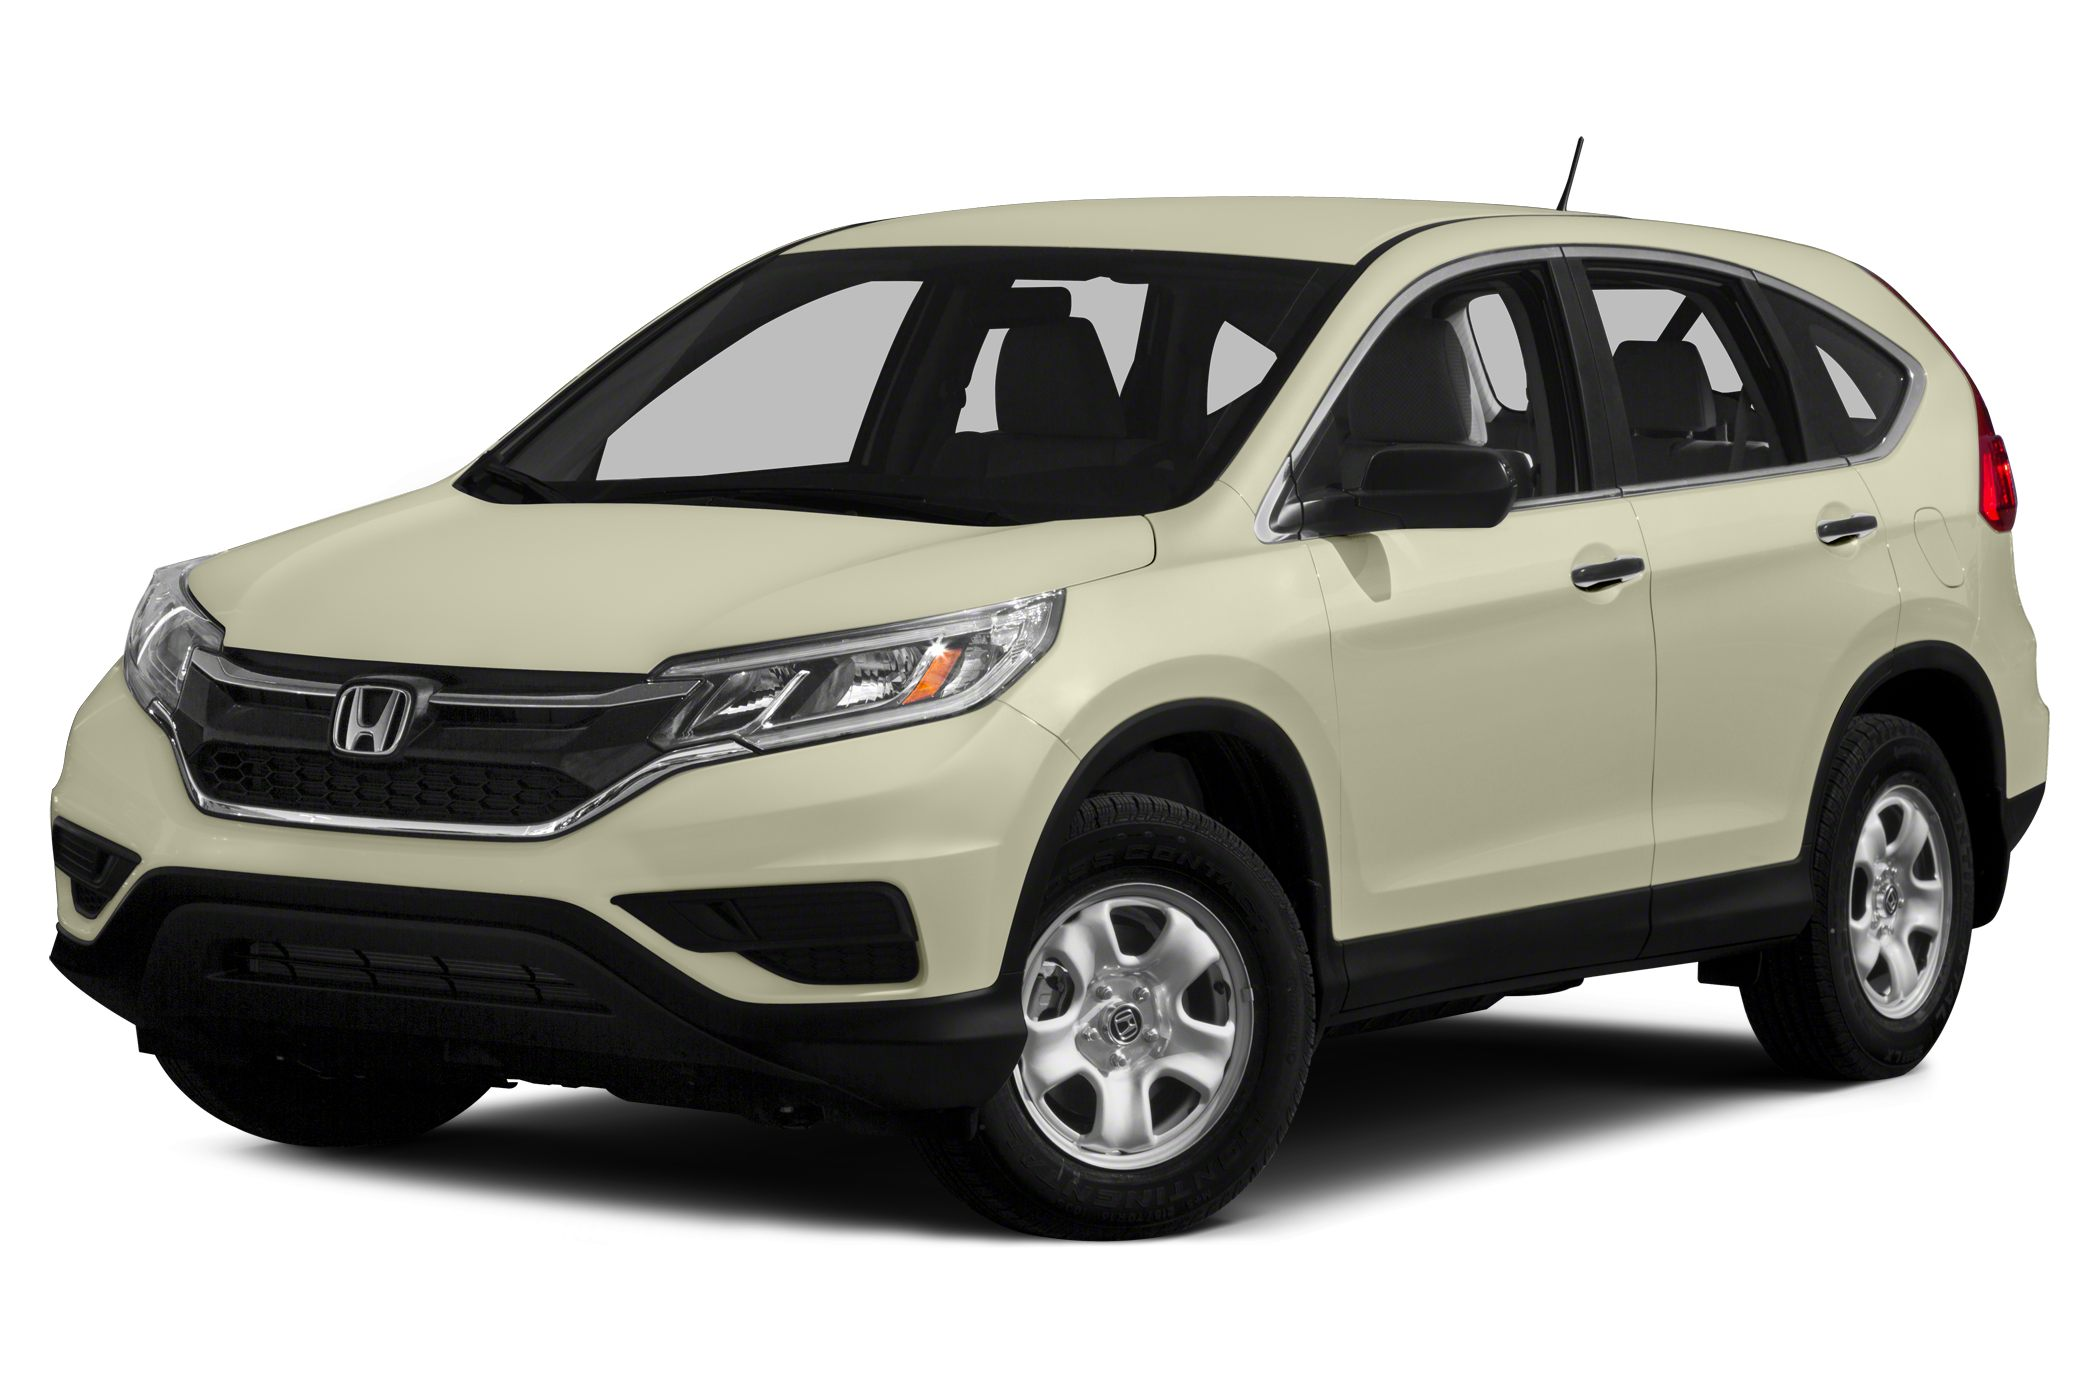 2015 Honda CR-V LX SUV for sale in Lockport for $25,575 with 7 miles.